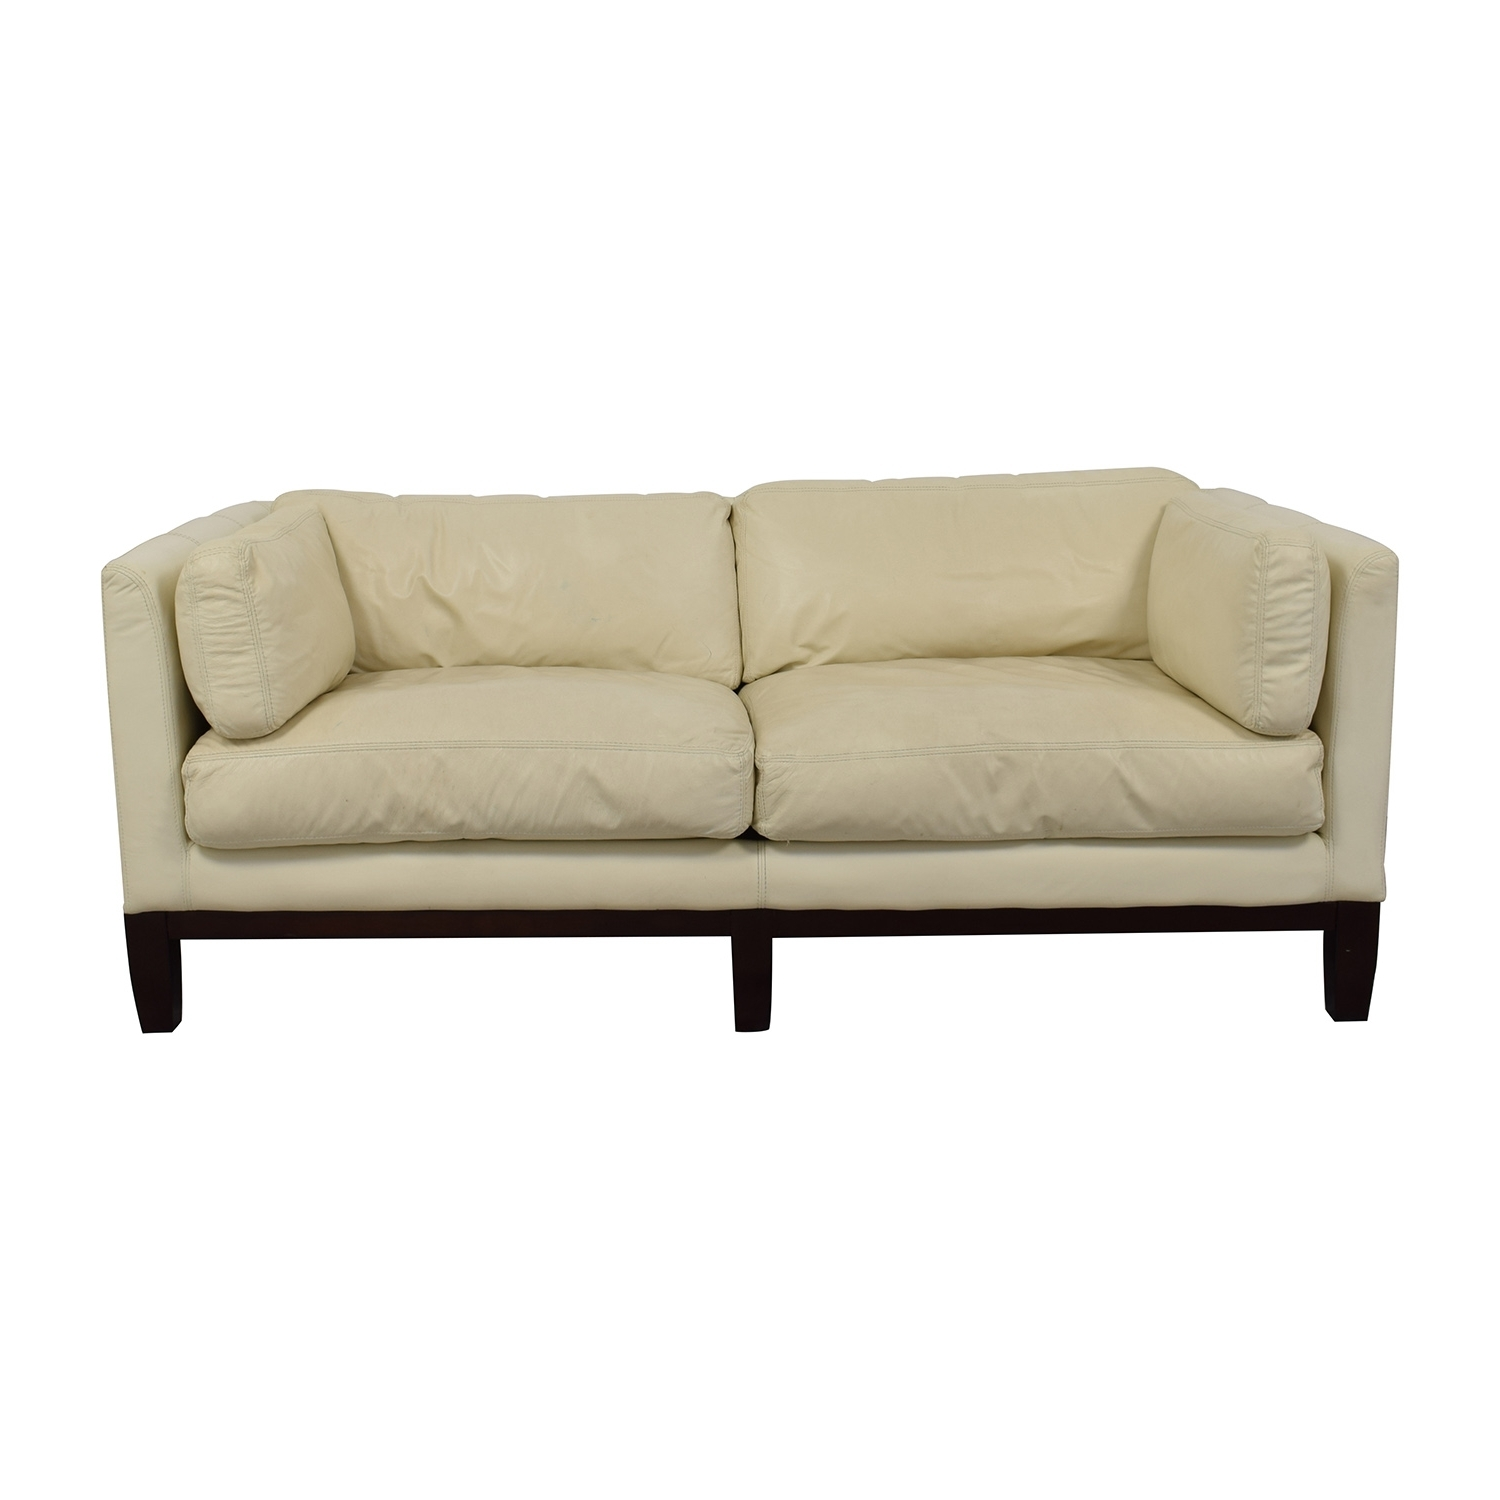 [%72% Off – Decoro Decoro Off White Leather Sofa / Sofas With 2019 Off White Leather Sofas|off White Leather Sofas Pertaining To Widely Used 72% Off – Decoro Decoro Off White Leather Sofa / Sofas|well Liked Off White Leather Sofas Within 72% Off – Decoro Decoro Off White Leather Sofa / Sofas|famous 72% Off – Decoro Decoro Off White Leather Sofa / Sofas Regarding Off White Leather Sofas%] (View 8 of 20)